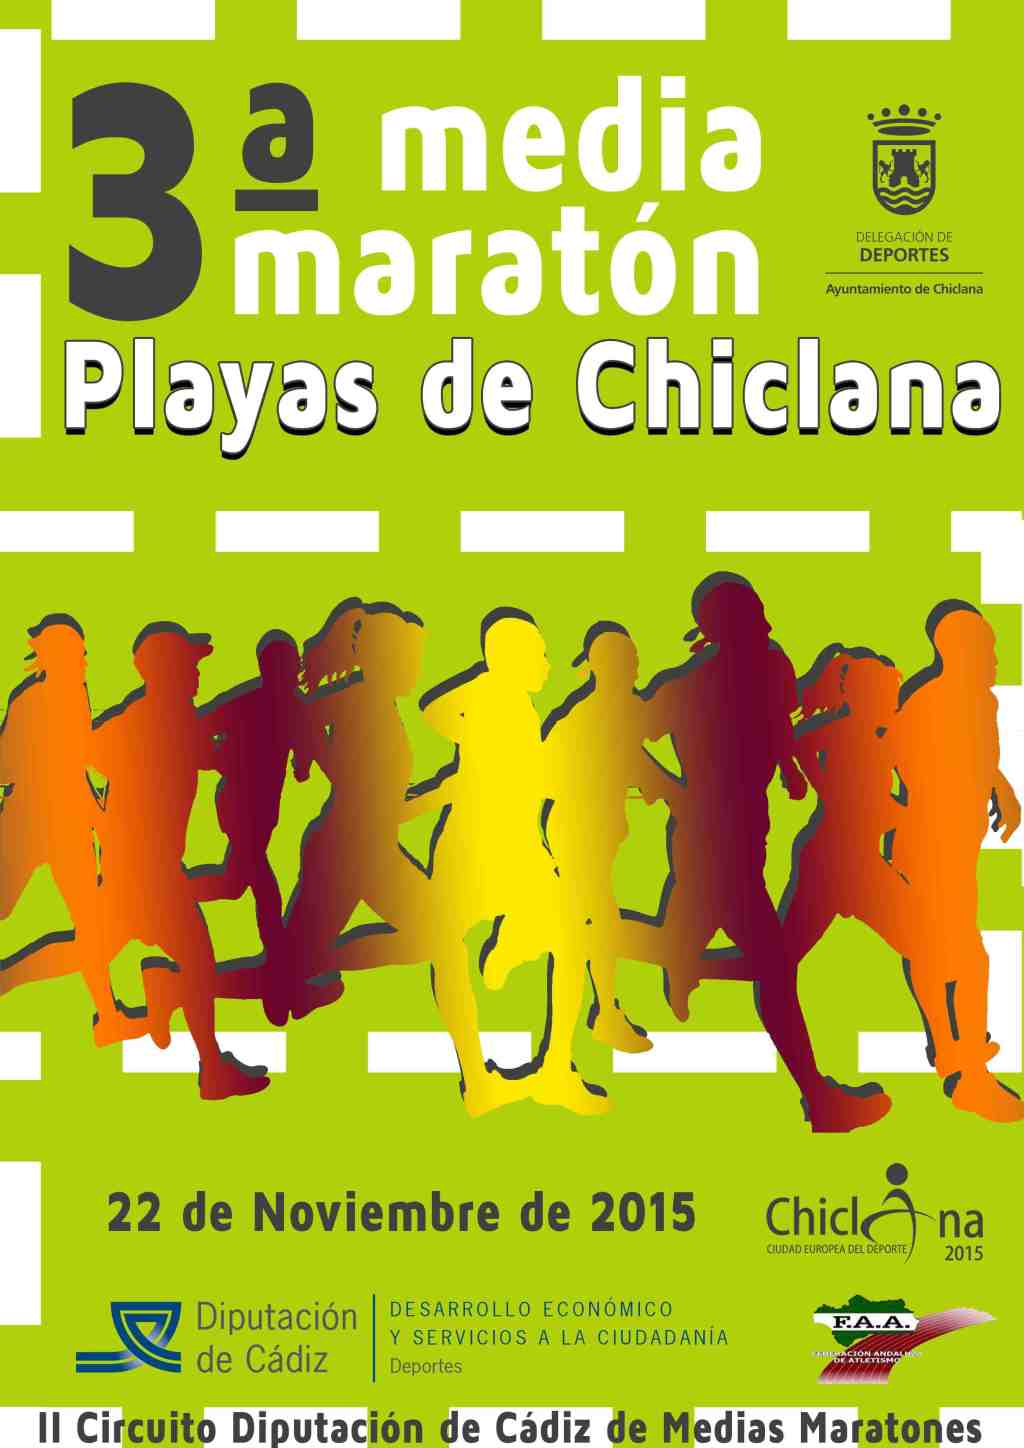 Carrera III Media Maratón Playas de Chiclana